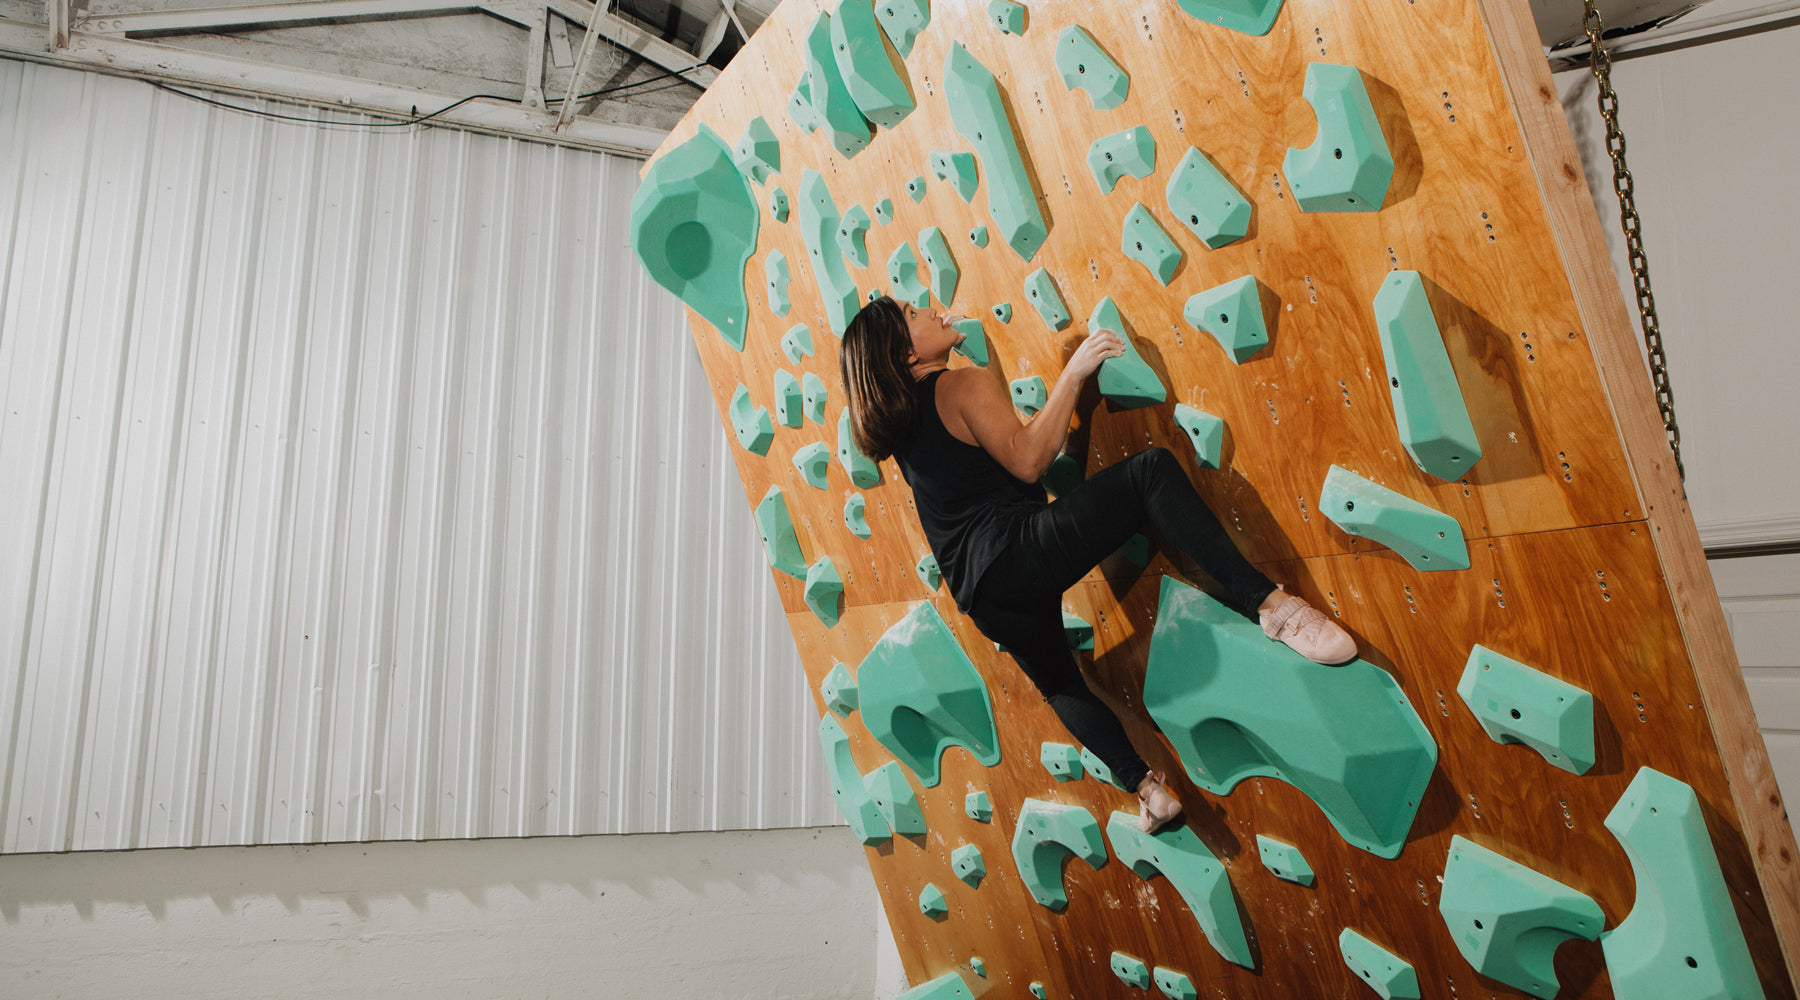 woman climbing on so ill climbing holds in so ill black denim while wearing On the Roam climbing shoes